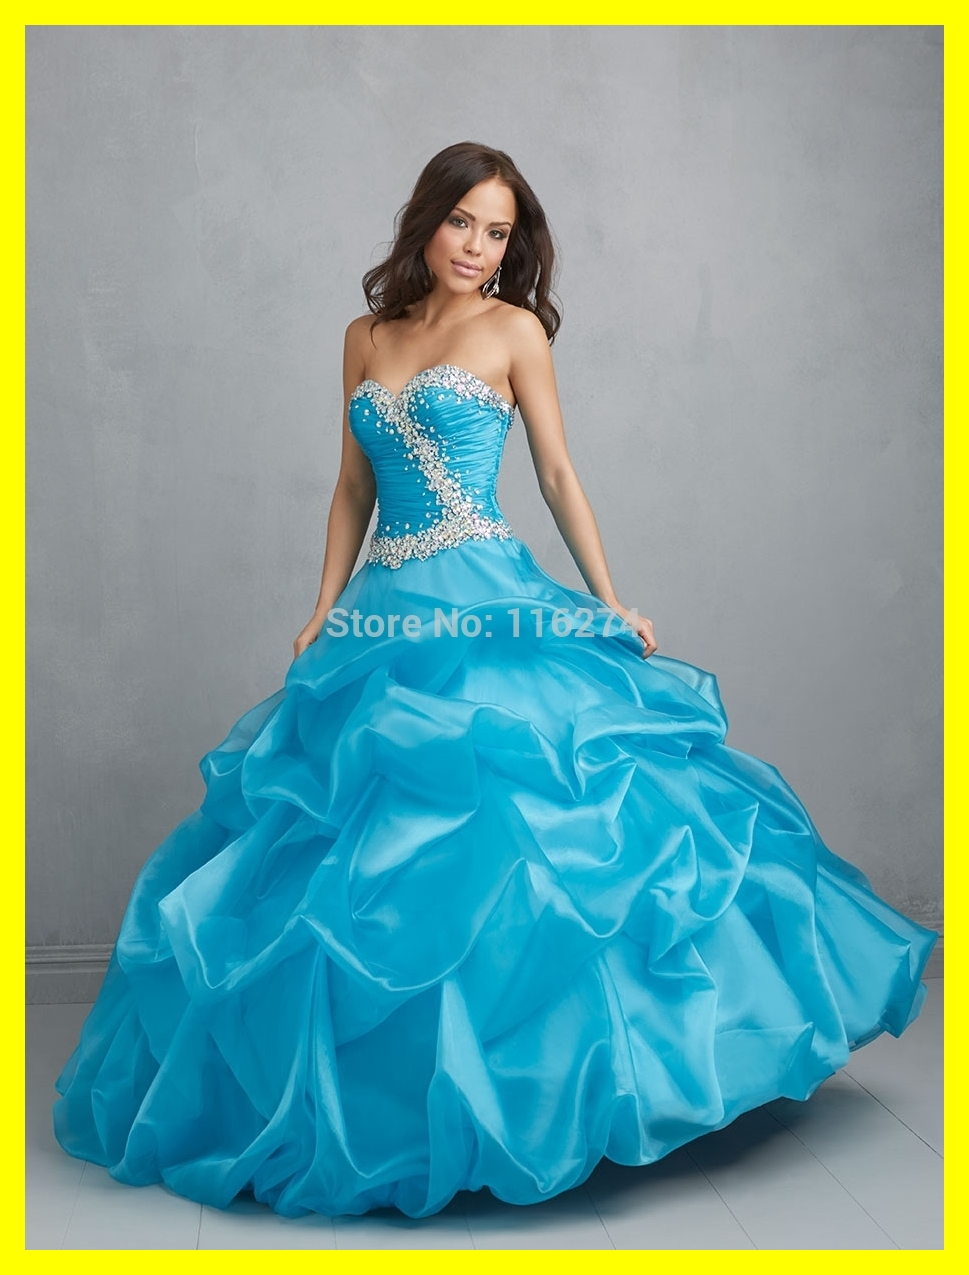 Prom Dresses In Ny - Boutique Prom Dresses